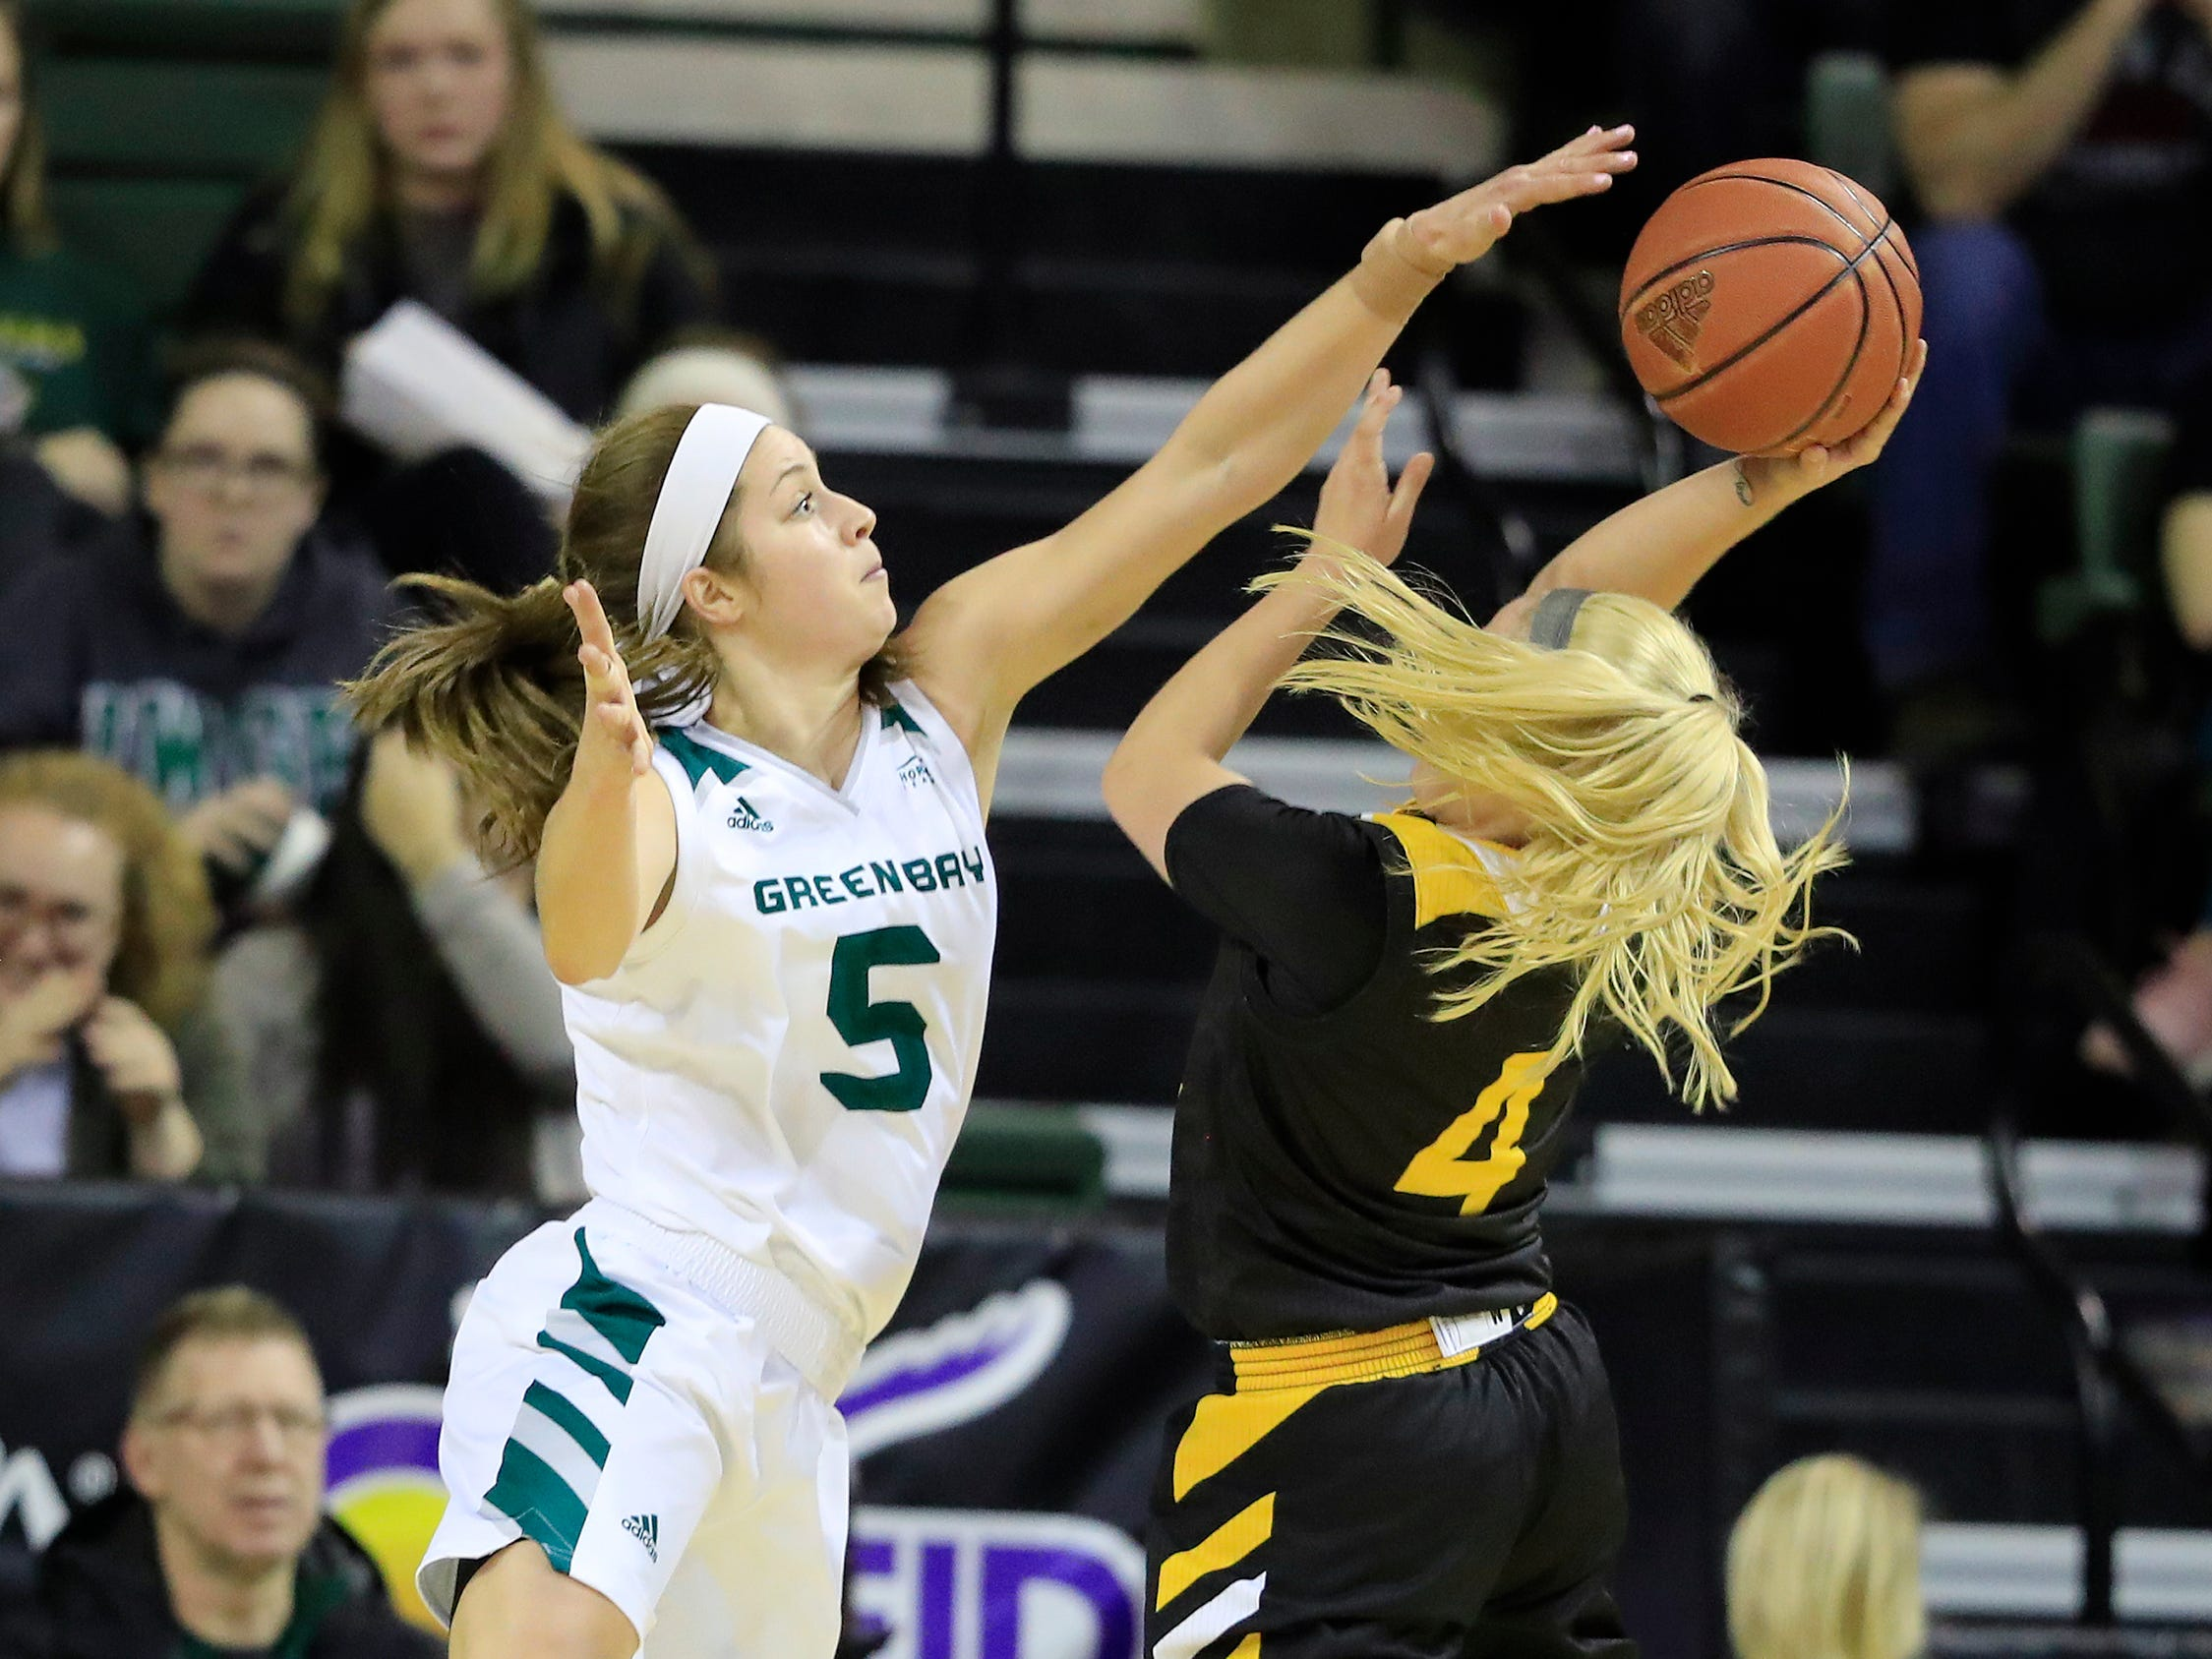 Green Bay Phoenix guard Laken James (5) defends a shot by Northern Kentucky Norse guard Taylor Clos (4) in a Horizon League women's basketball game at the Kress Center on Thursday, February 7, 2019 in Green Bay, Wis.